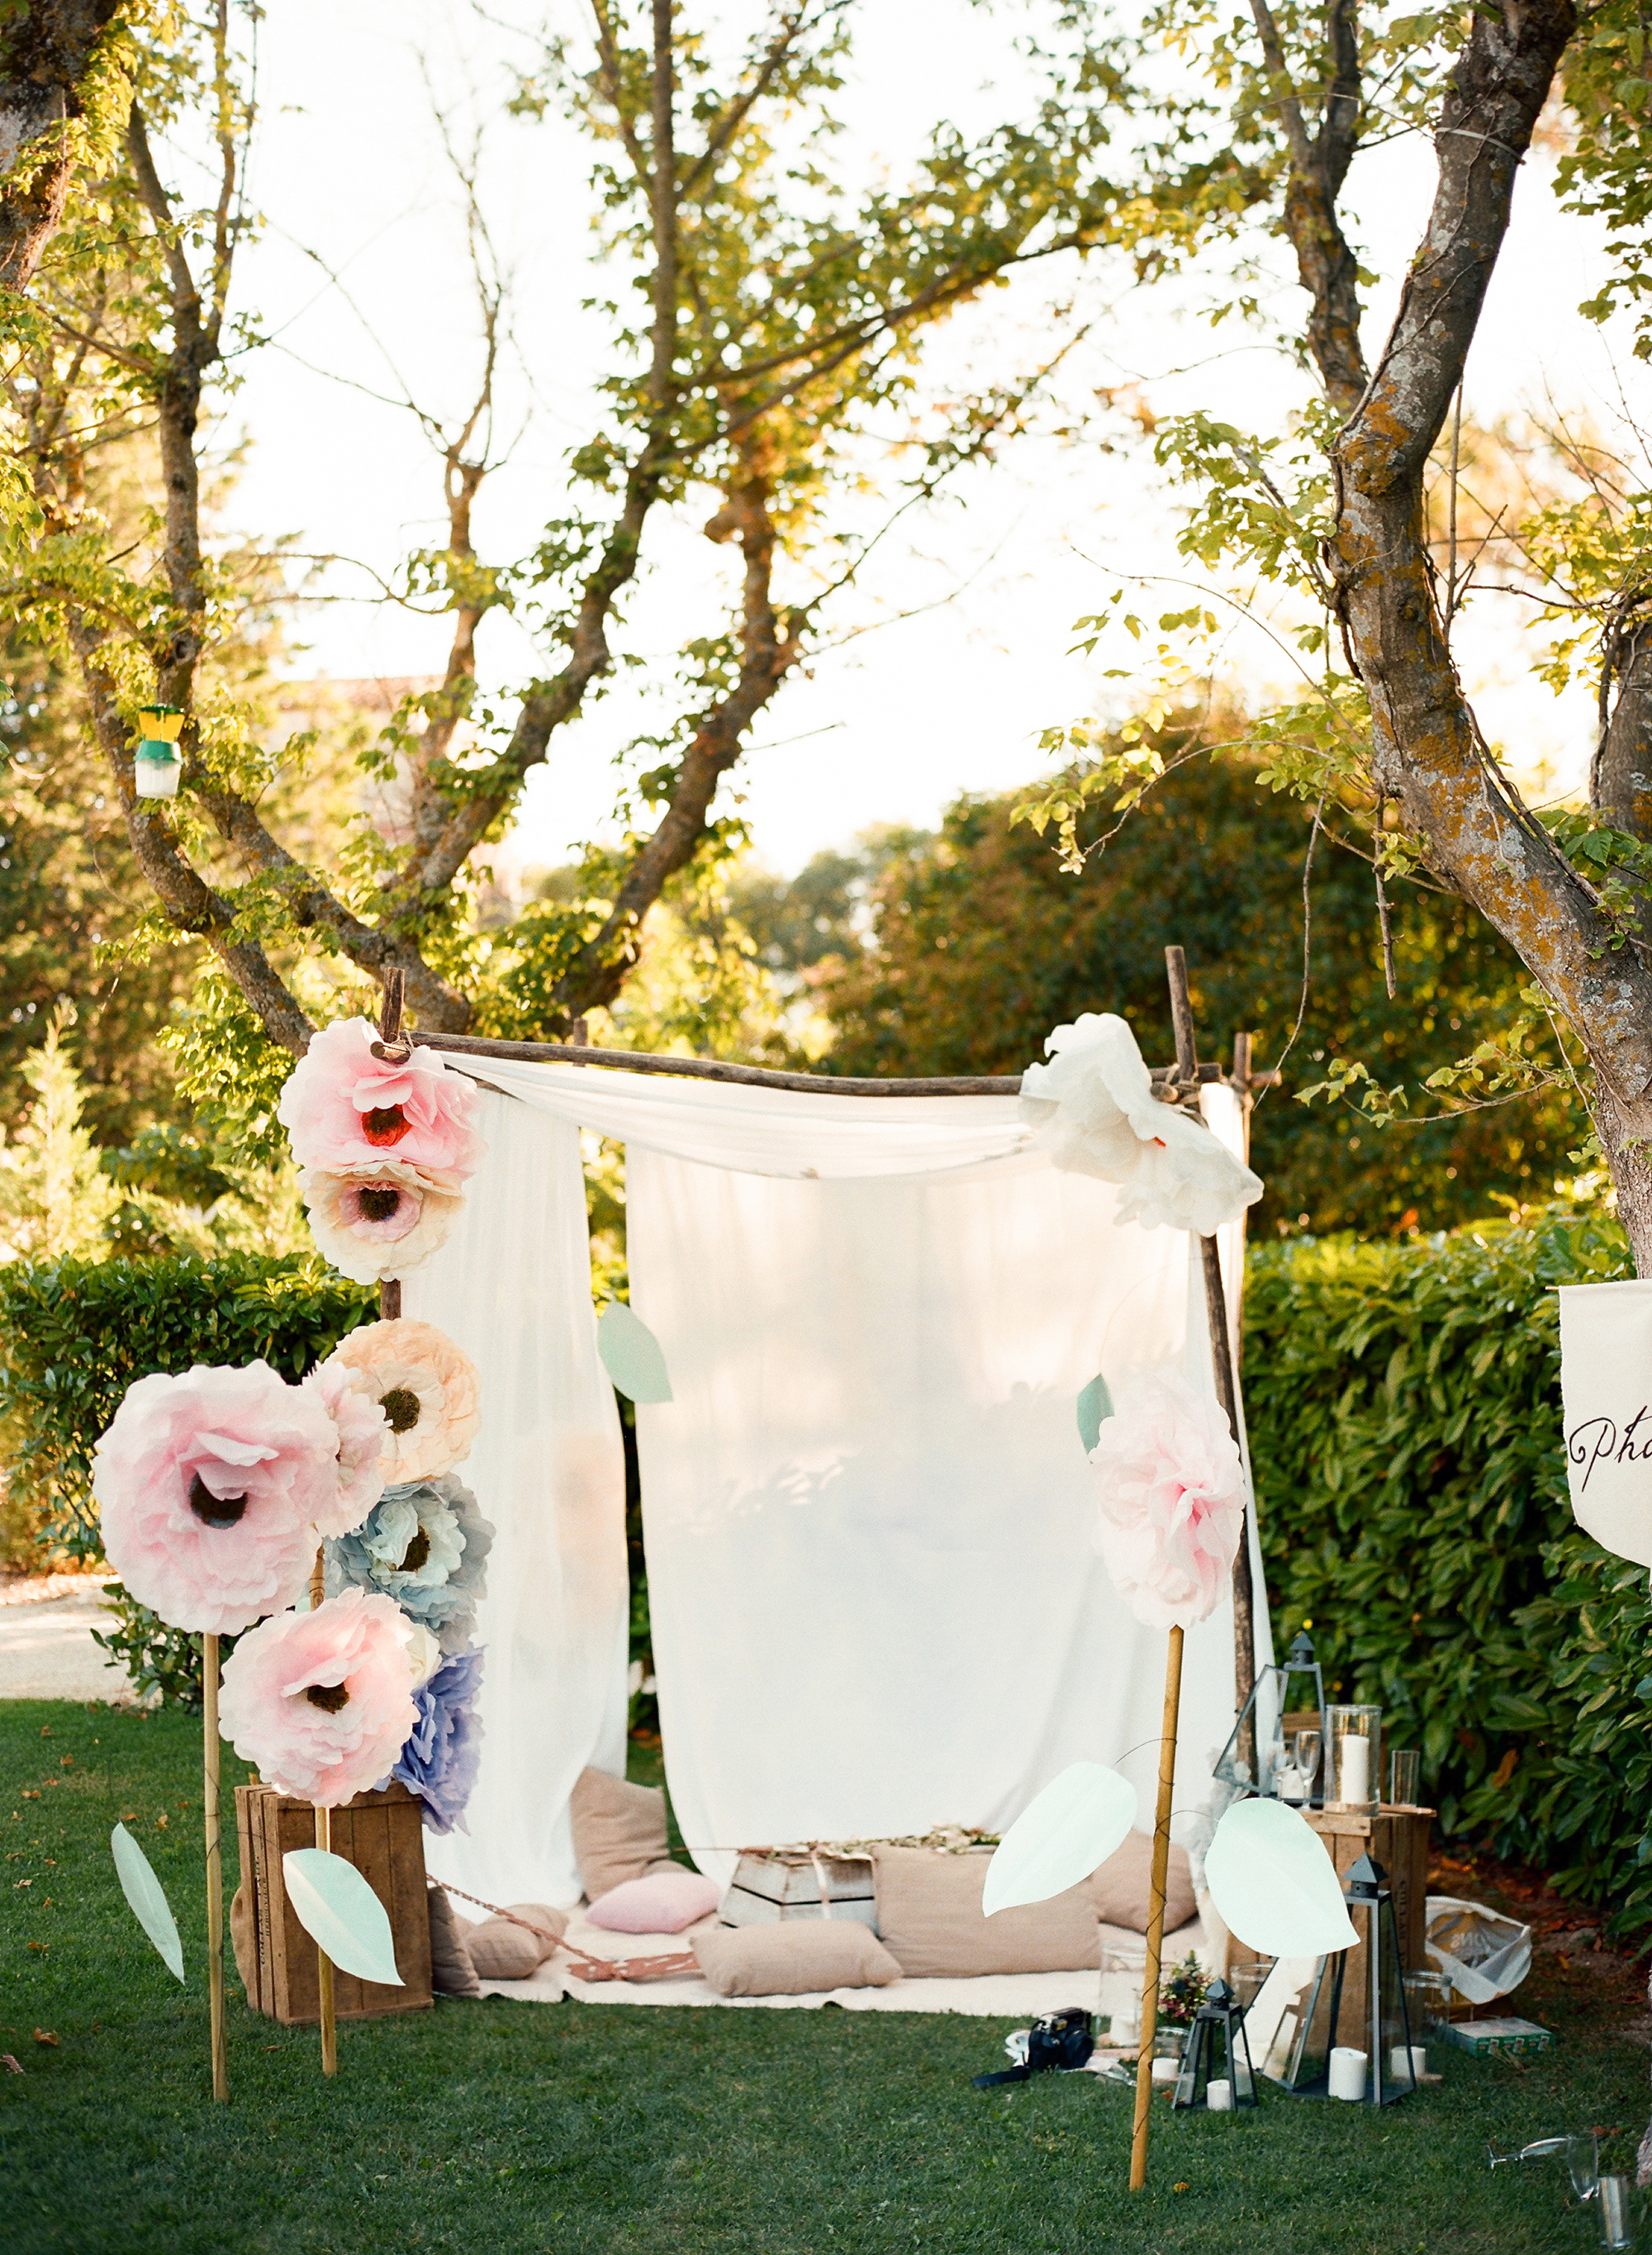 photo booth with paper flowers